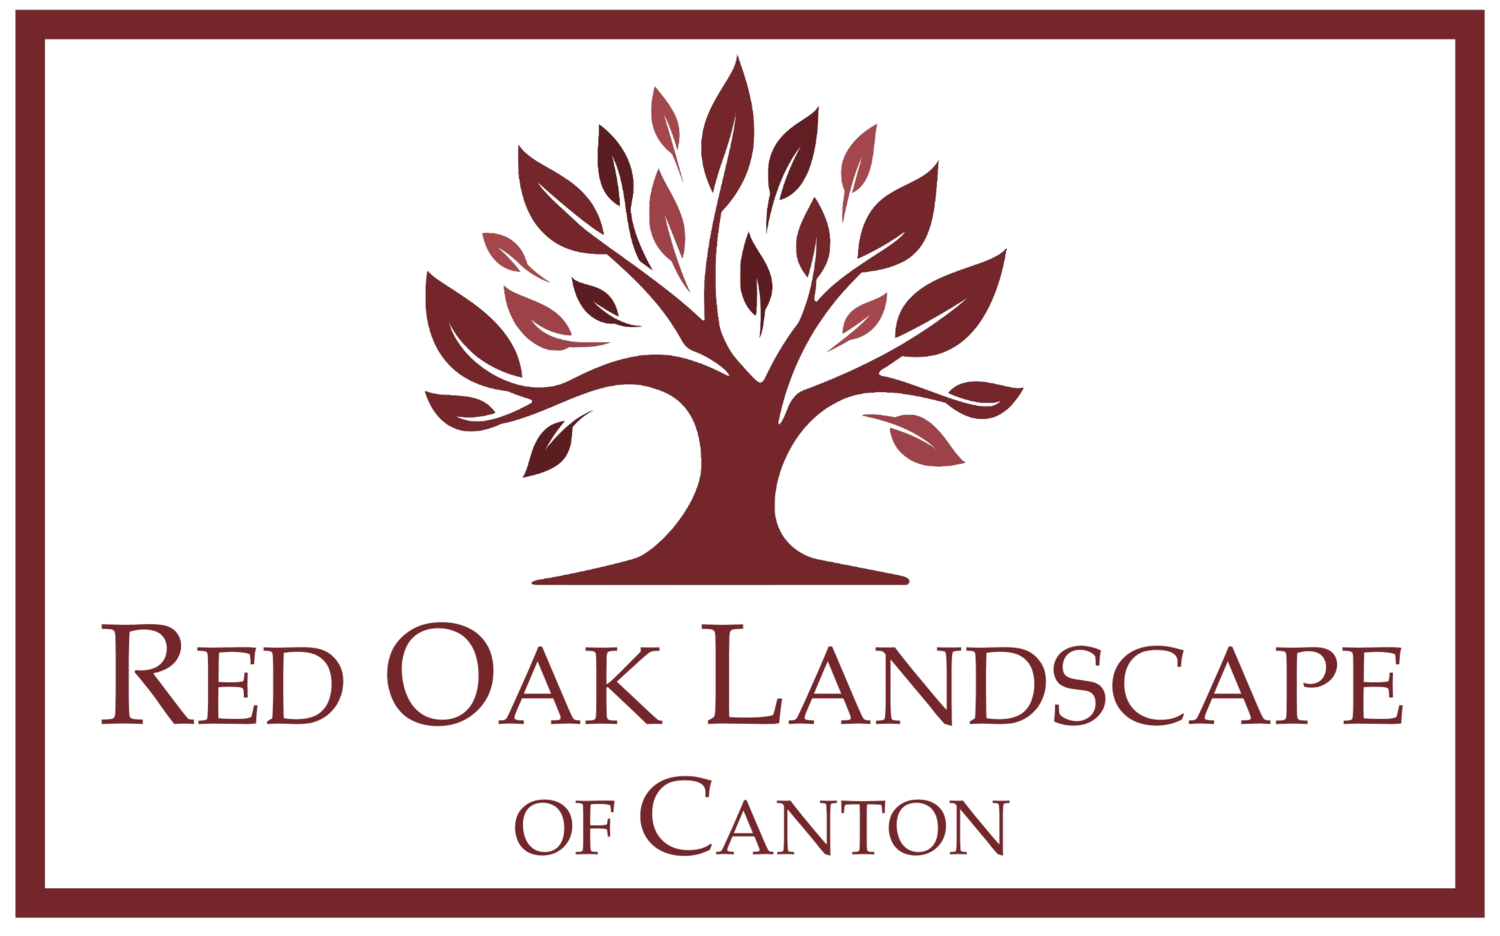 Red Oak Landscaping of Canton